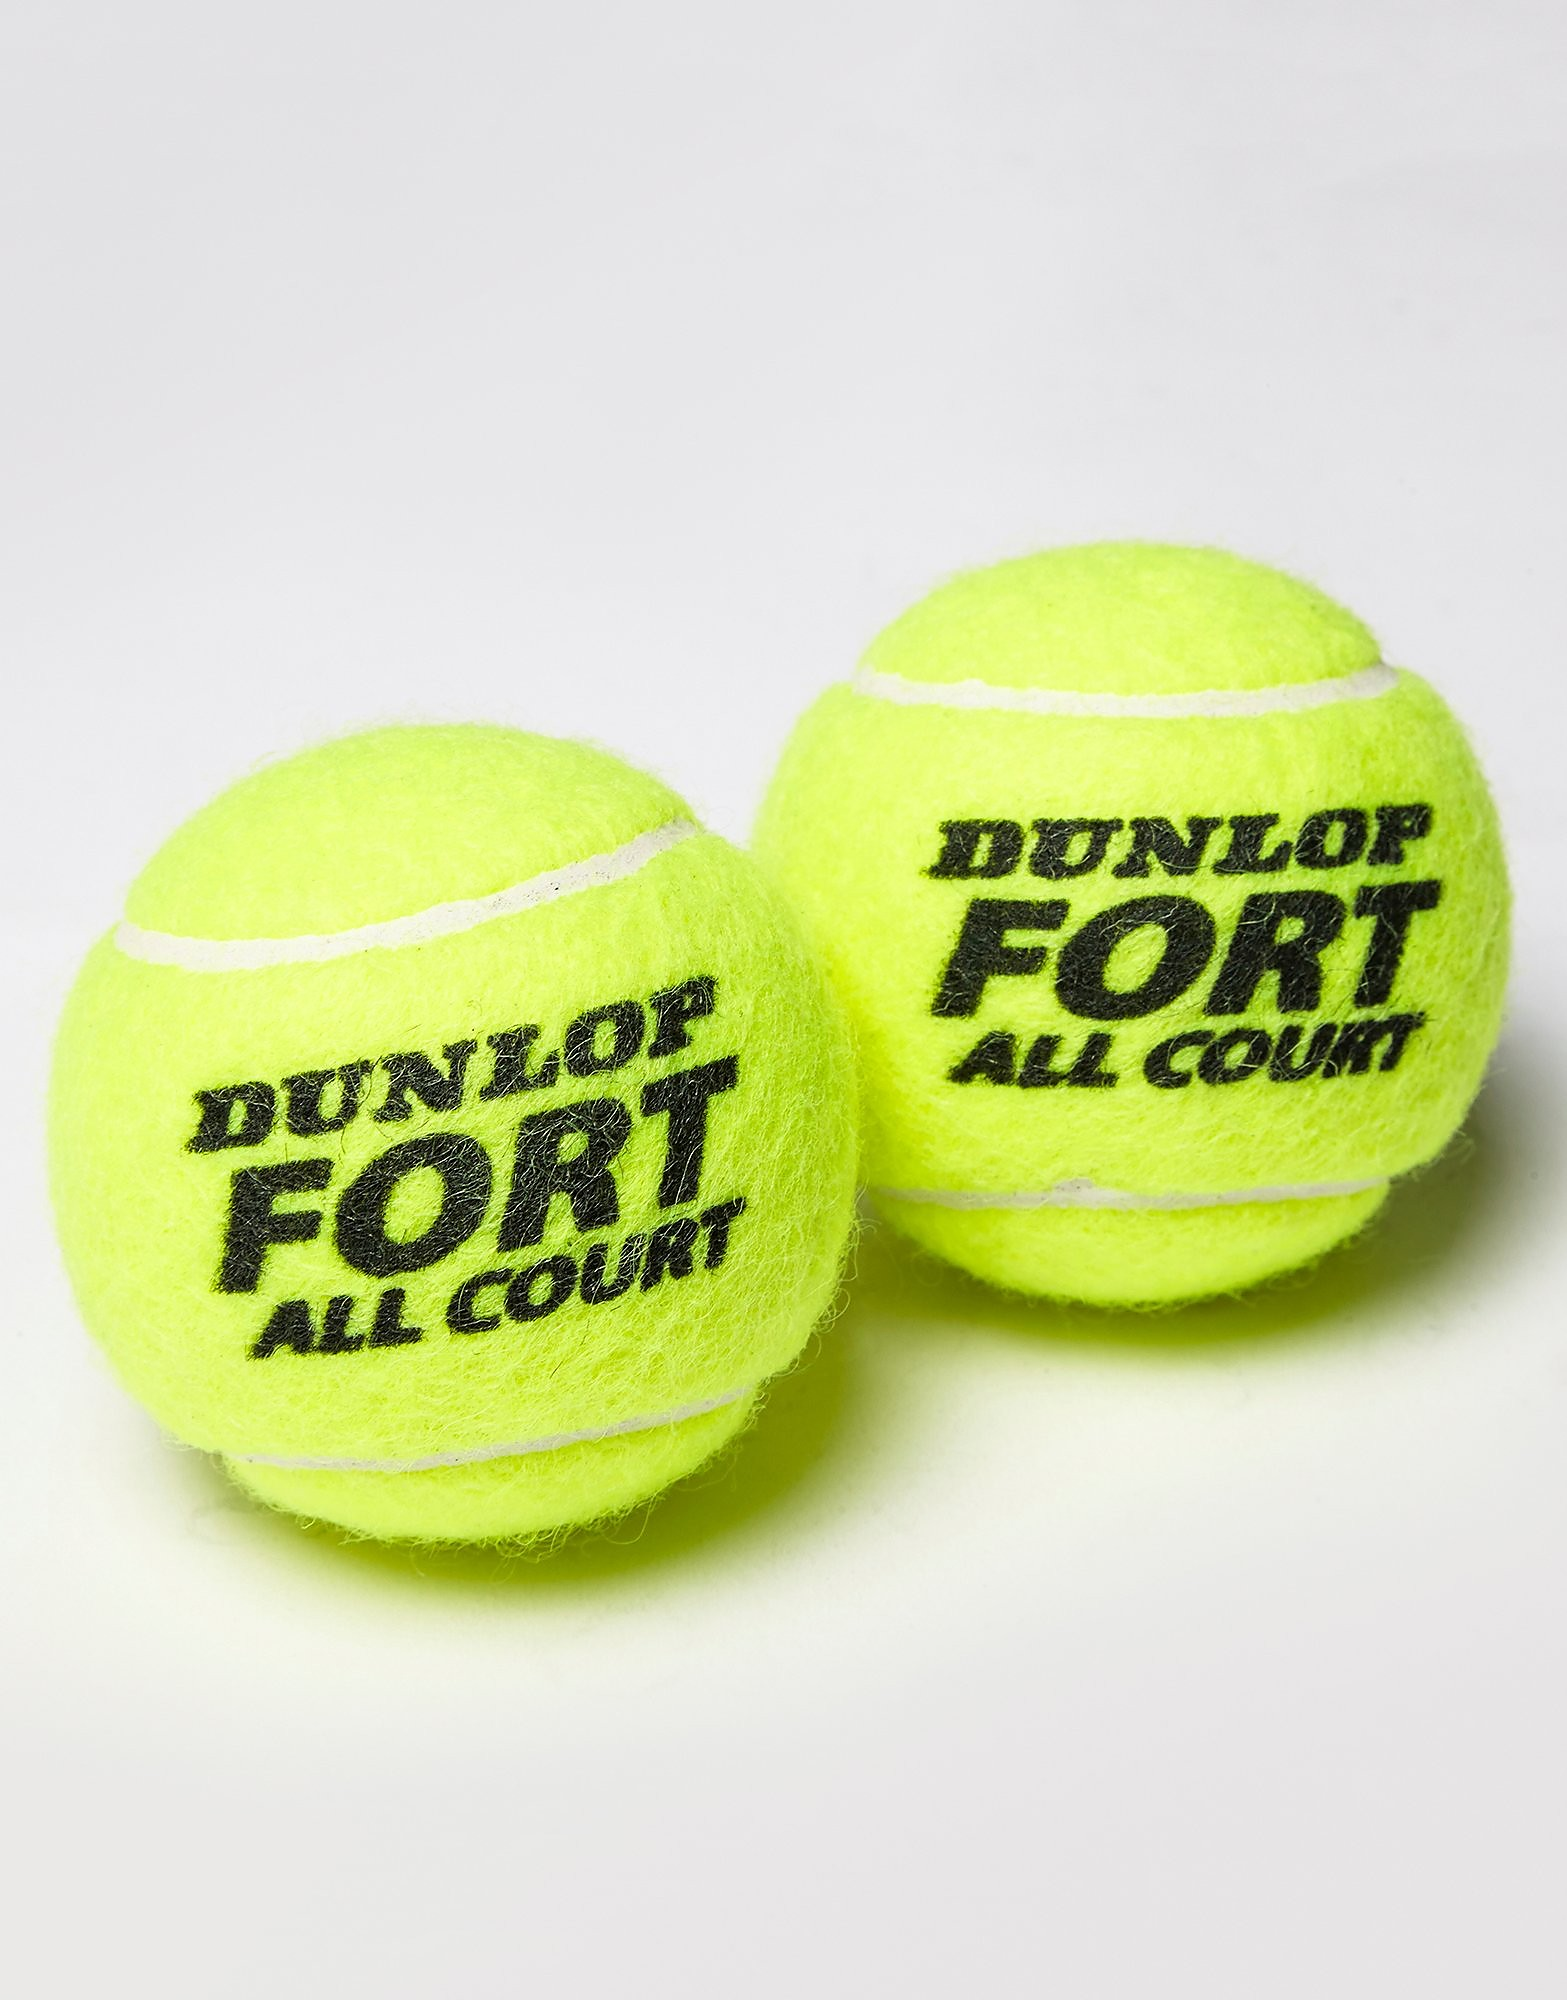 Dunlop Fort All Court Tennis Balls - 4 Ball Can